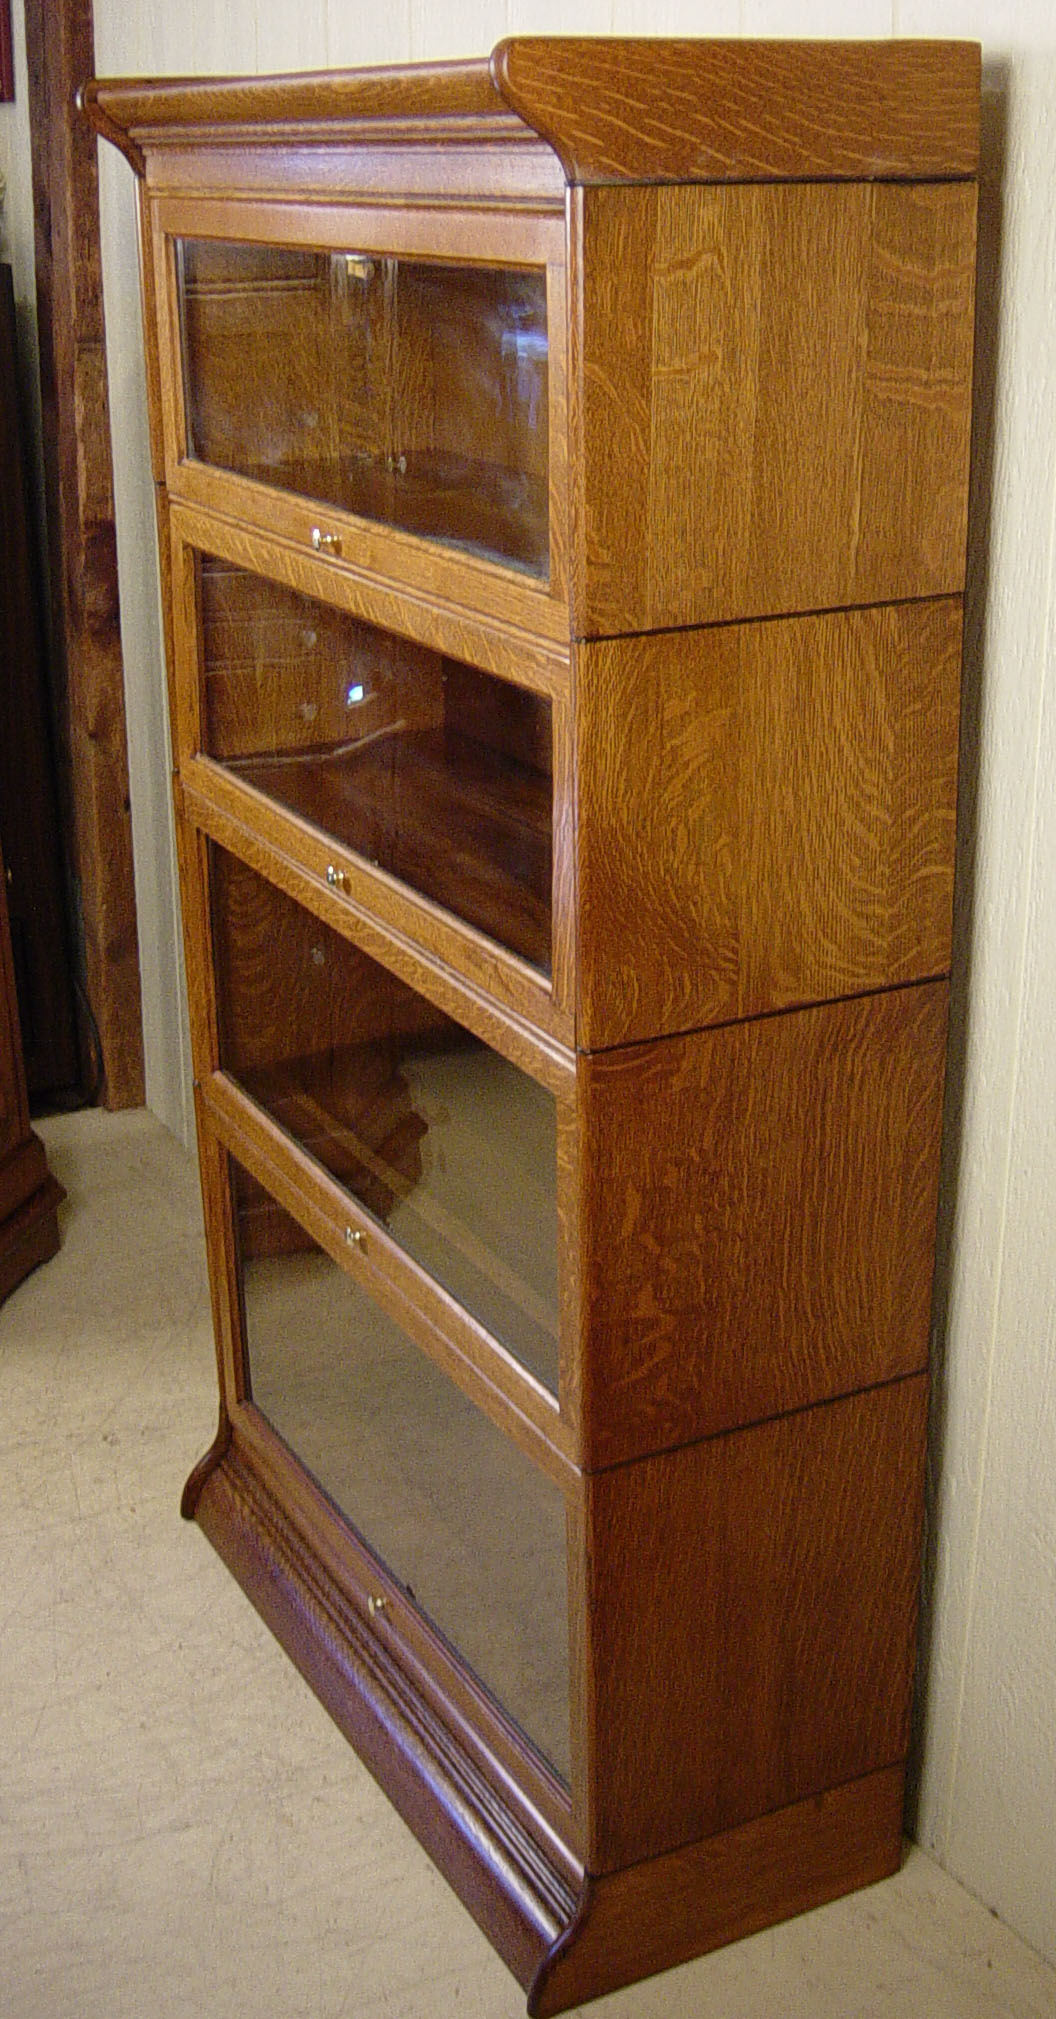 4 Section Oak Barrister Bookcase